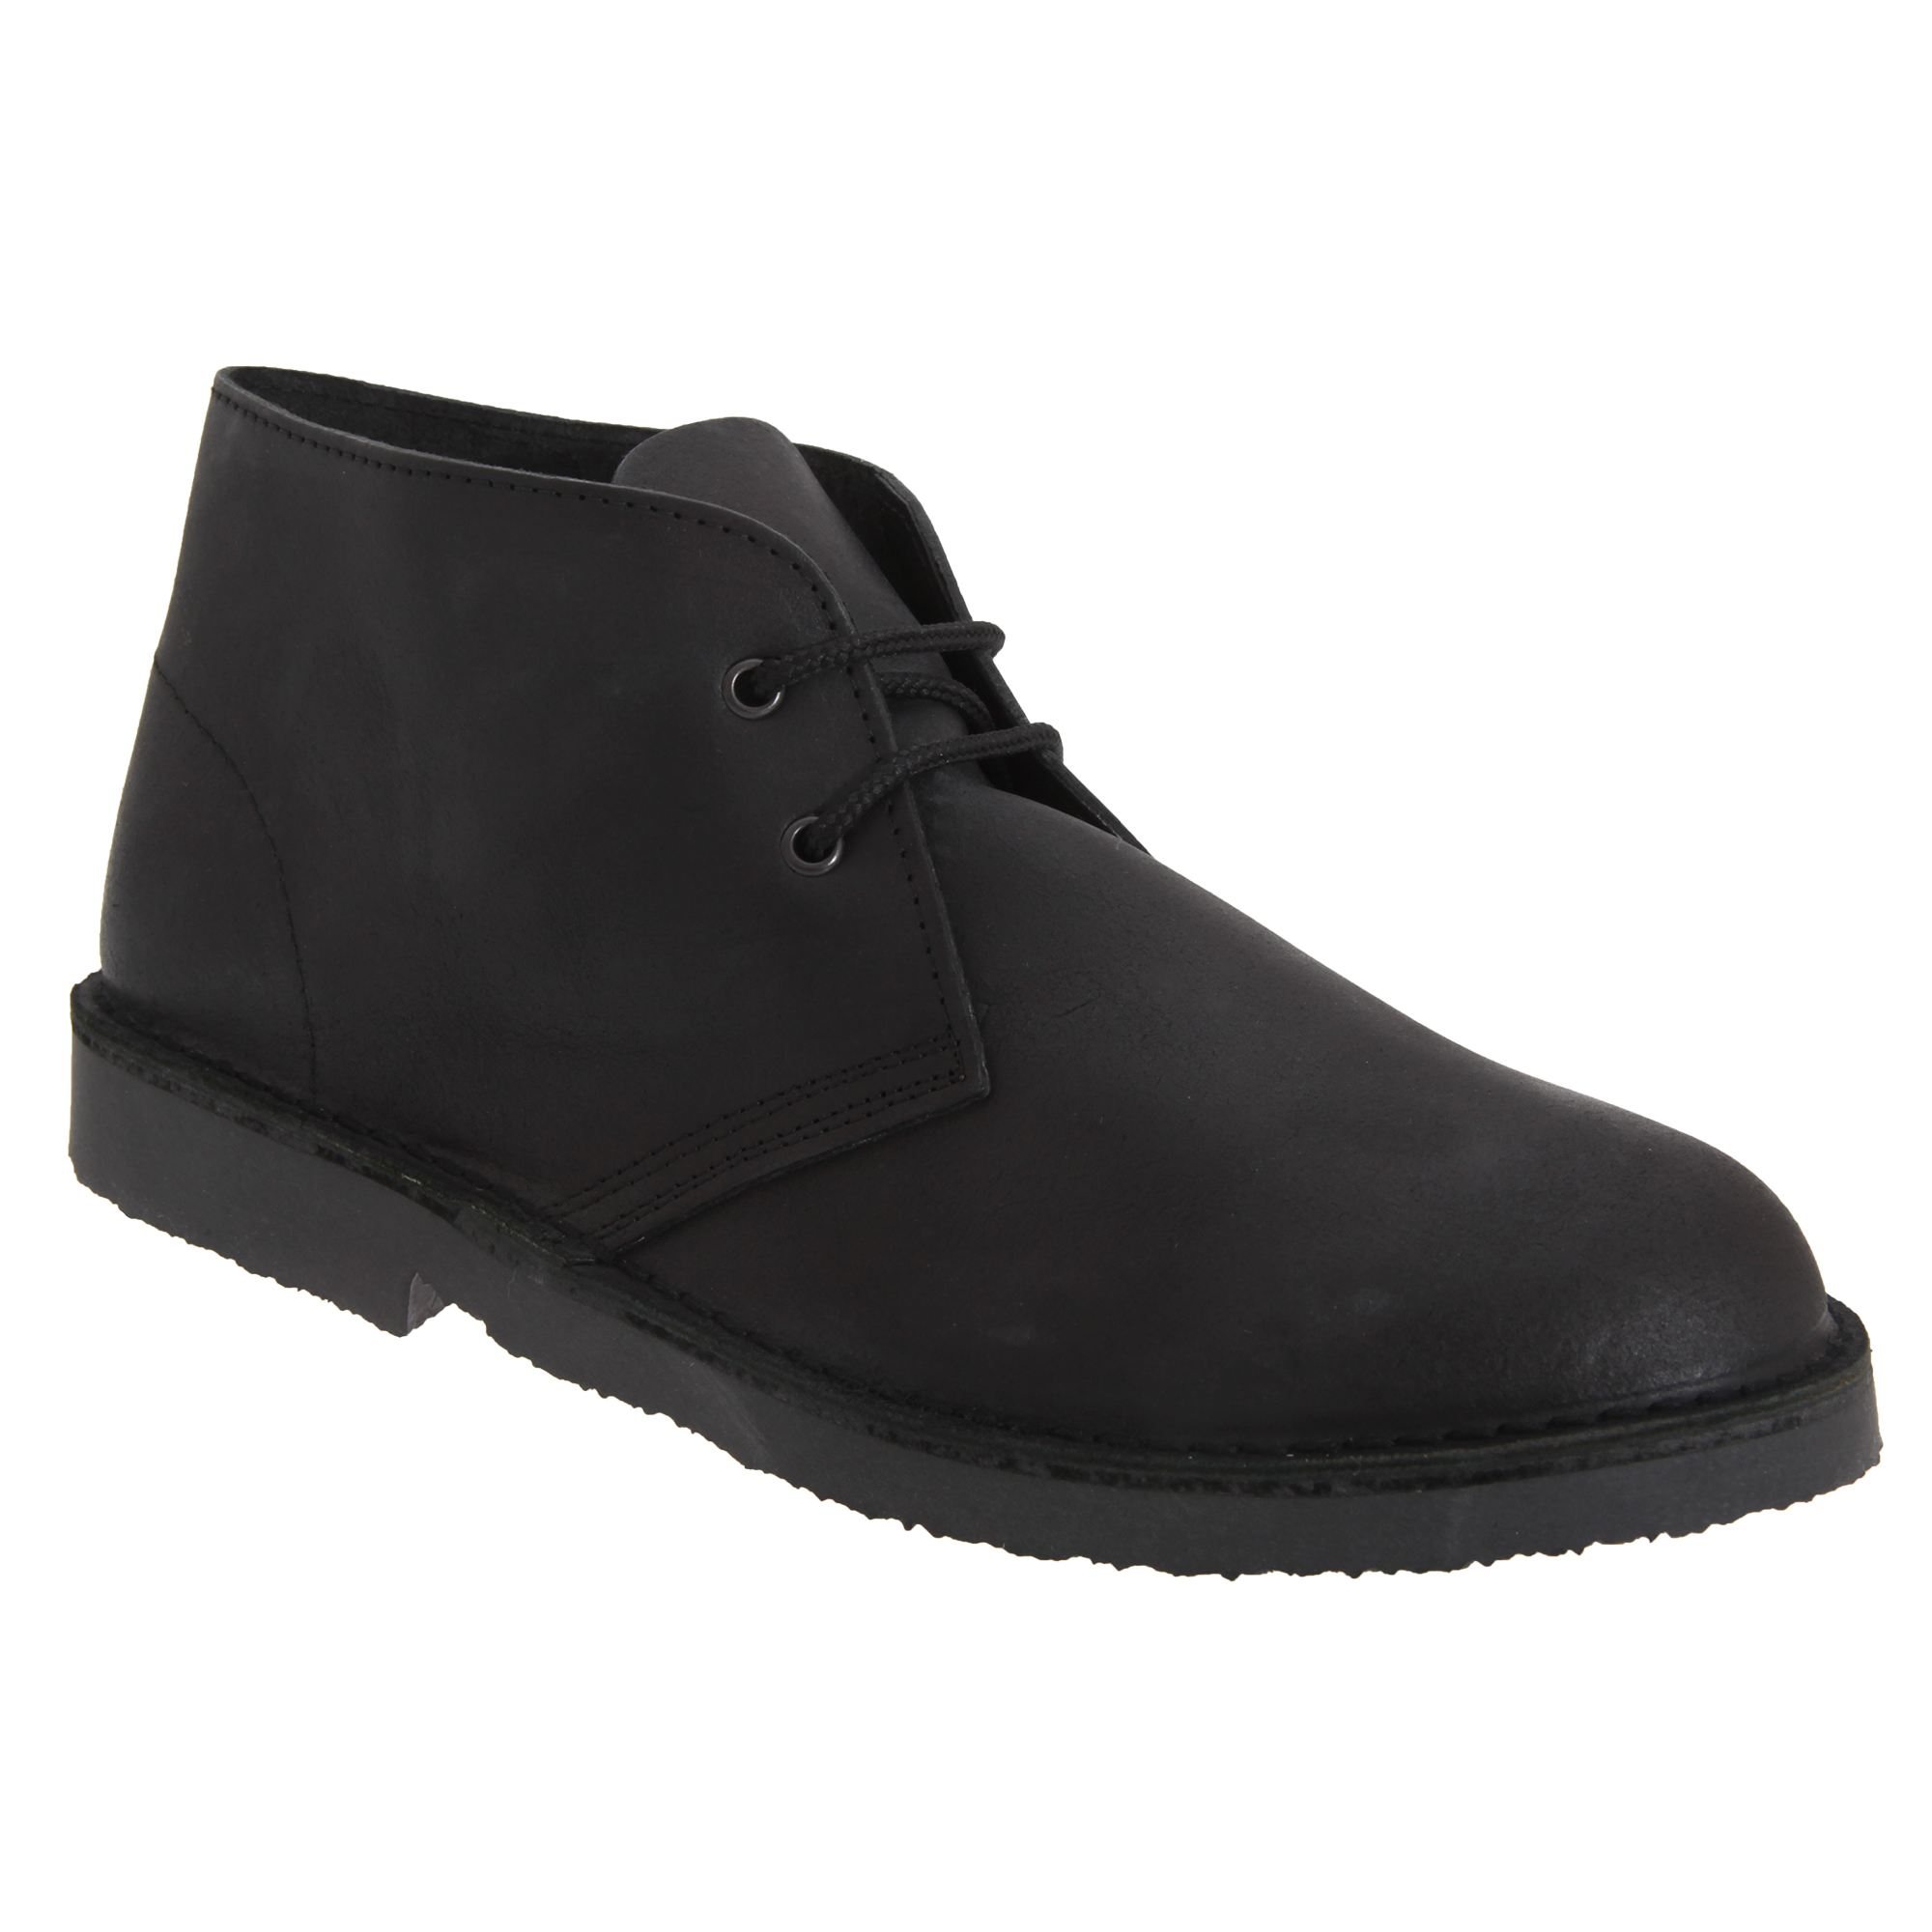 Roamers Adults Unisex Unlined Distressed Leather Desert Boots (8 UK) (Black)